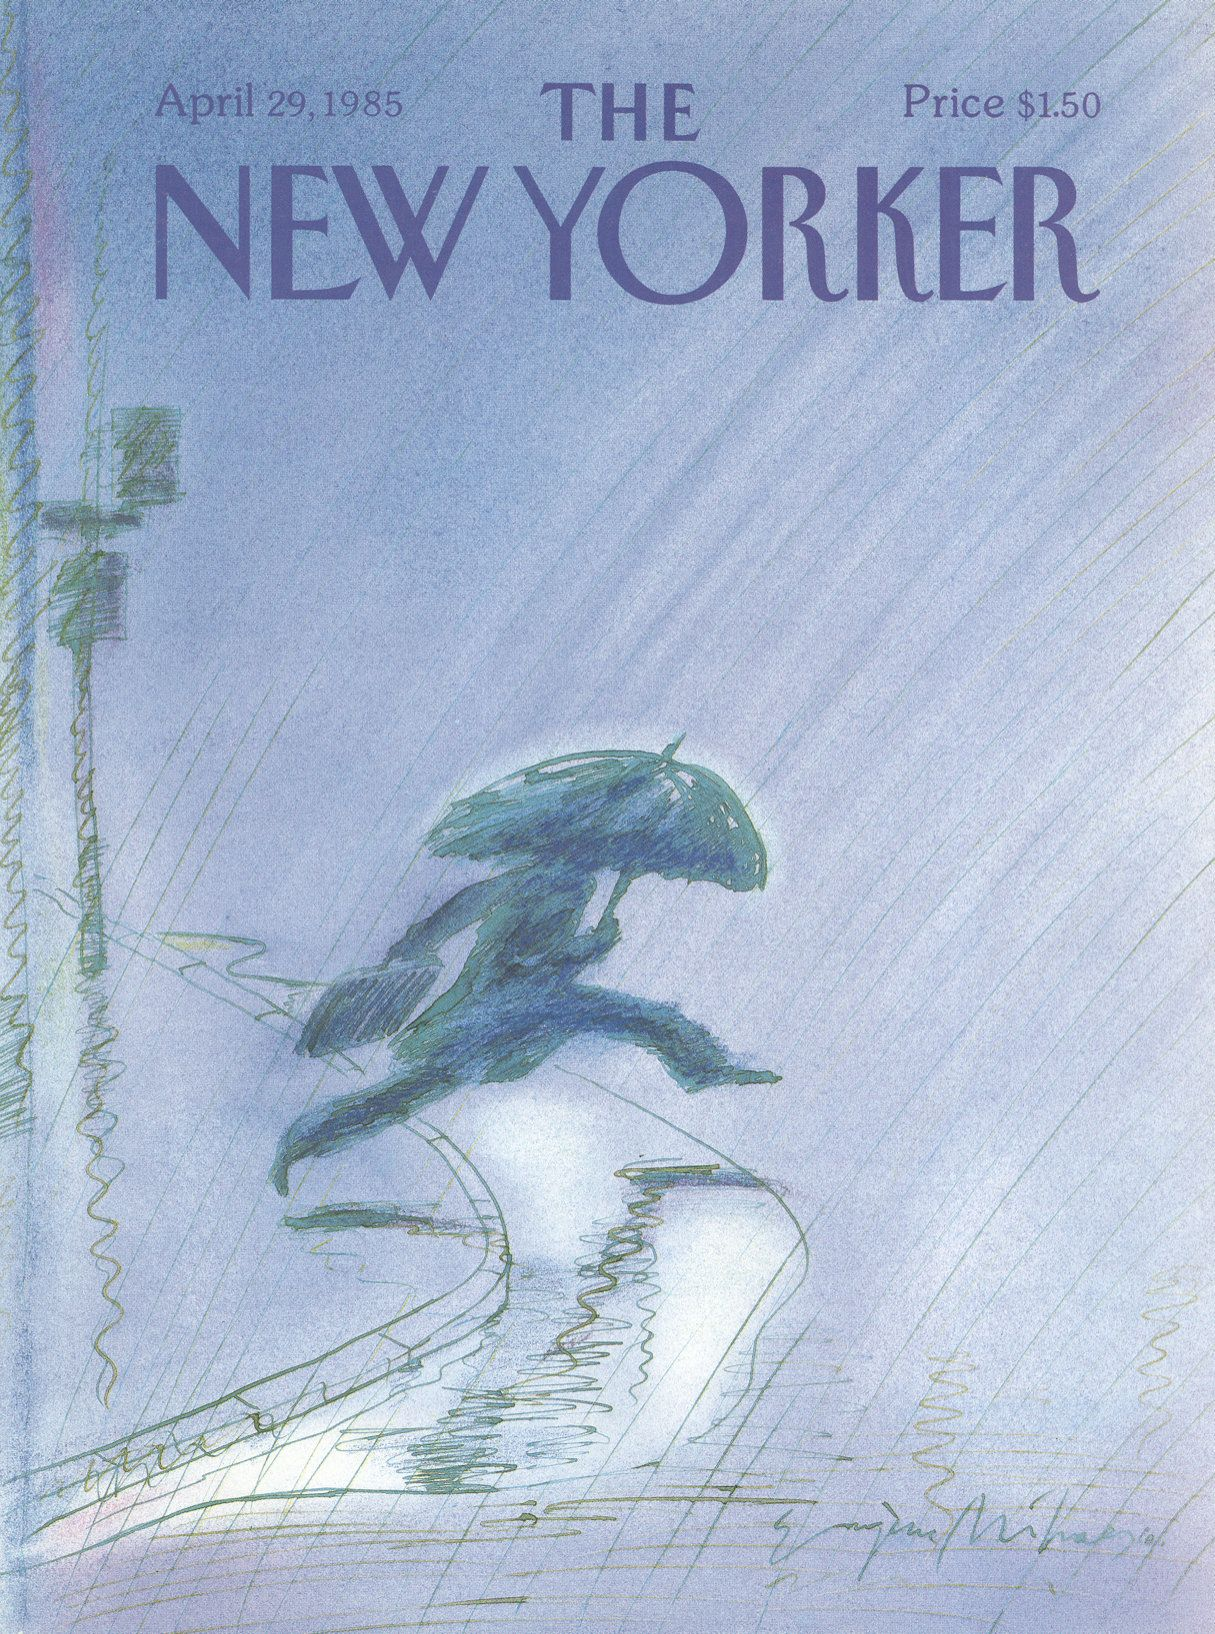 The New Yorker - Monday, April 29, 1985 - Issue # 3141 - Vol. 61 - N° 10 - Cover by : Eugène Mihaesco